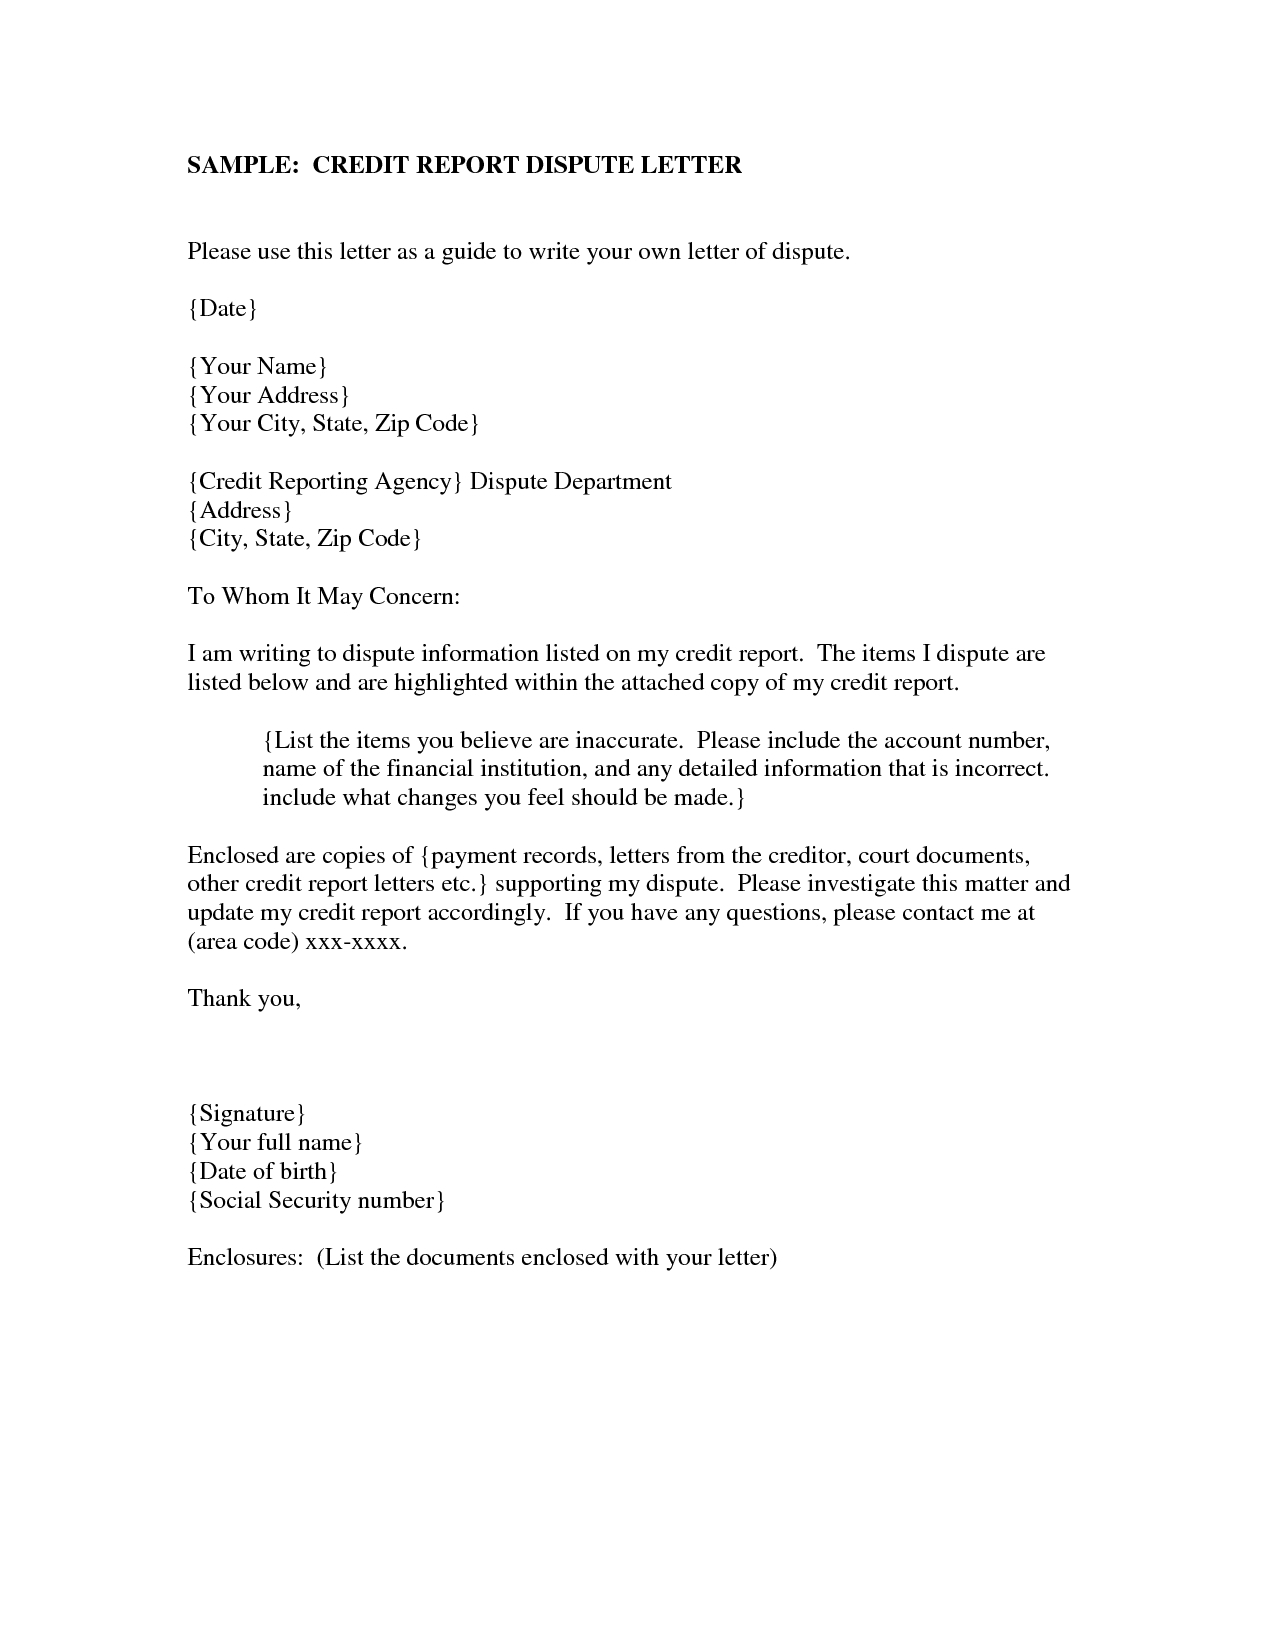 Credit Agency Dispute Letter Template - How to Write Credit Dispute Letter Image Collections Letter format